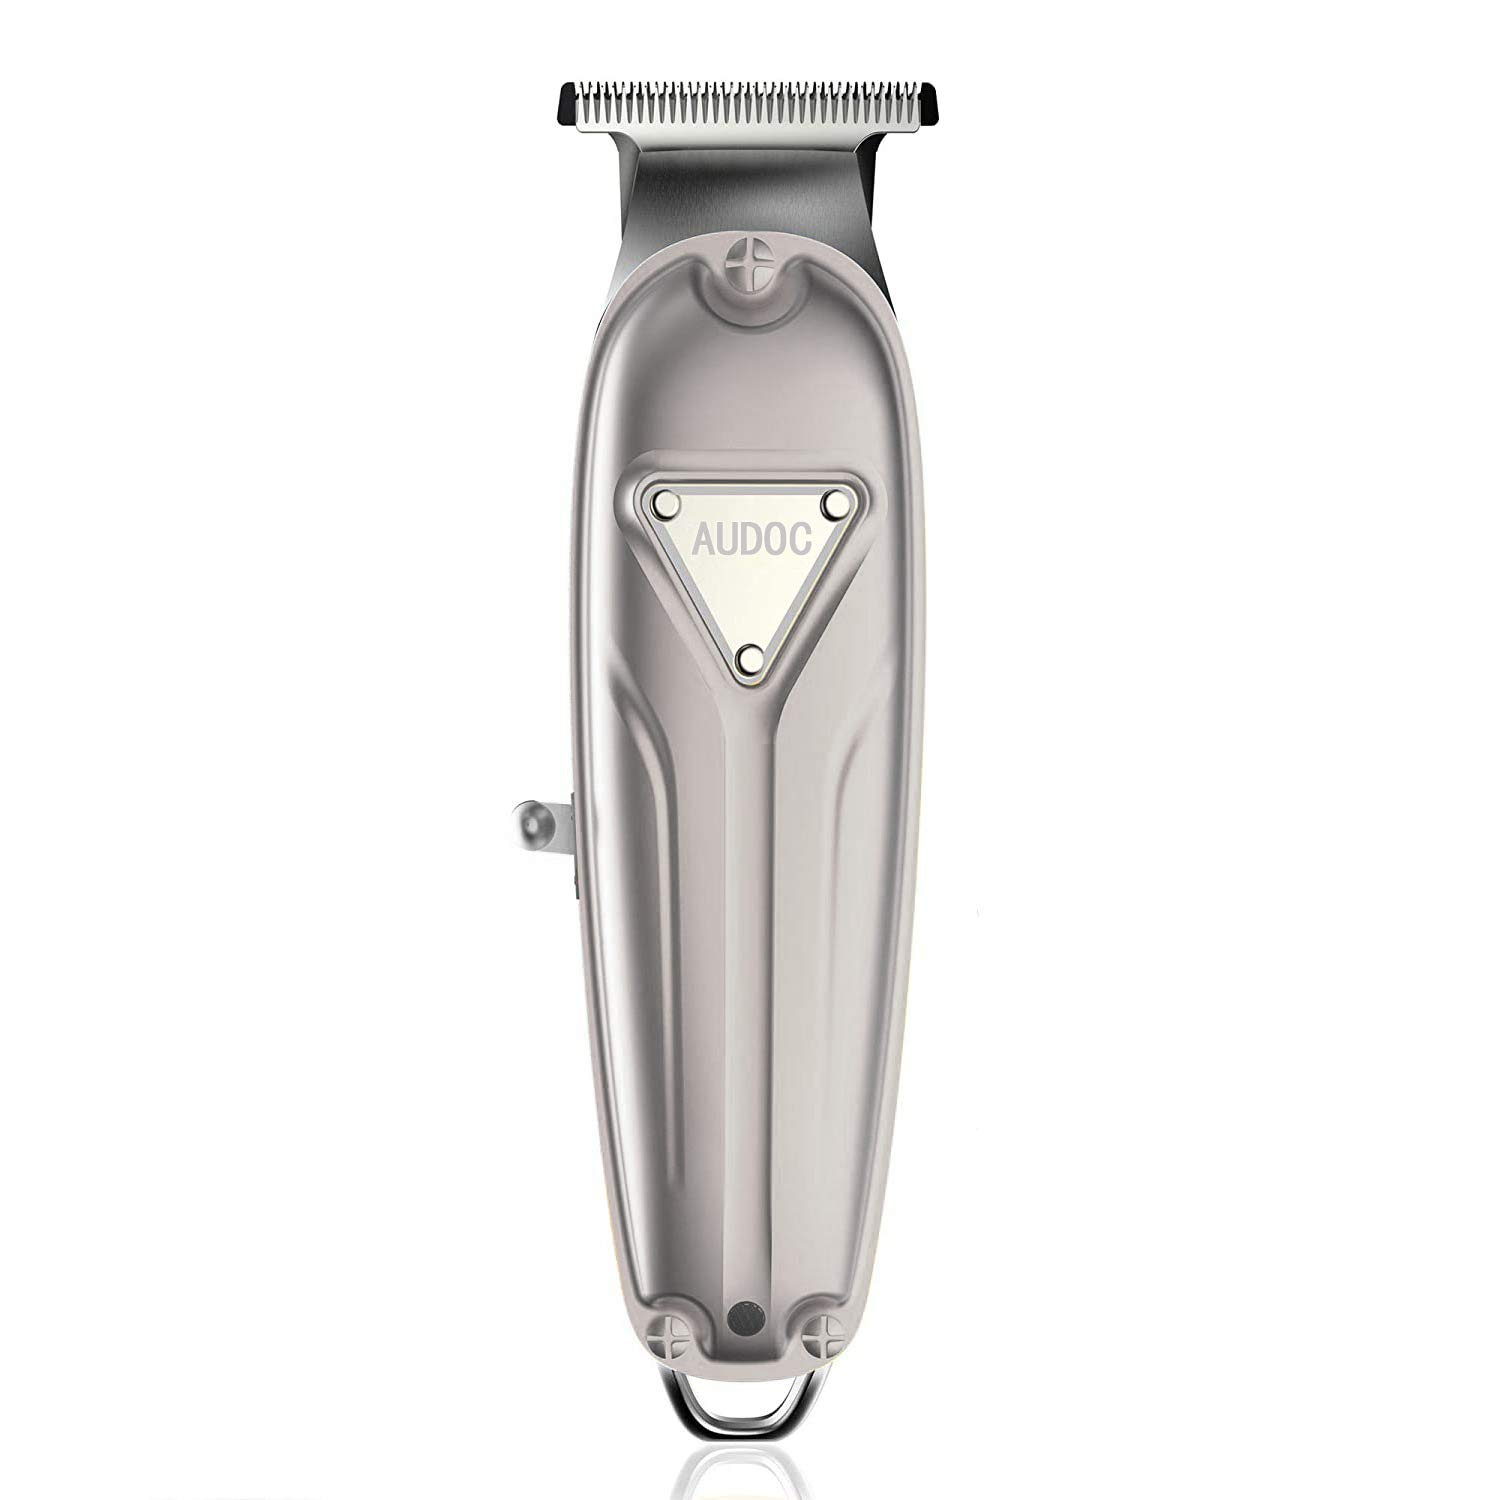 Professional T-Outliner Hair Clipper Trimmer with T-Blade Hair Haircuttings Kit Mustache Body Grooming Kit with USB Rechargeable with All Metal Housing for Men Stylists Barbers Kids Home (silver)